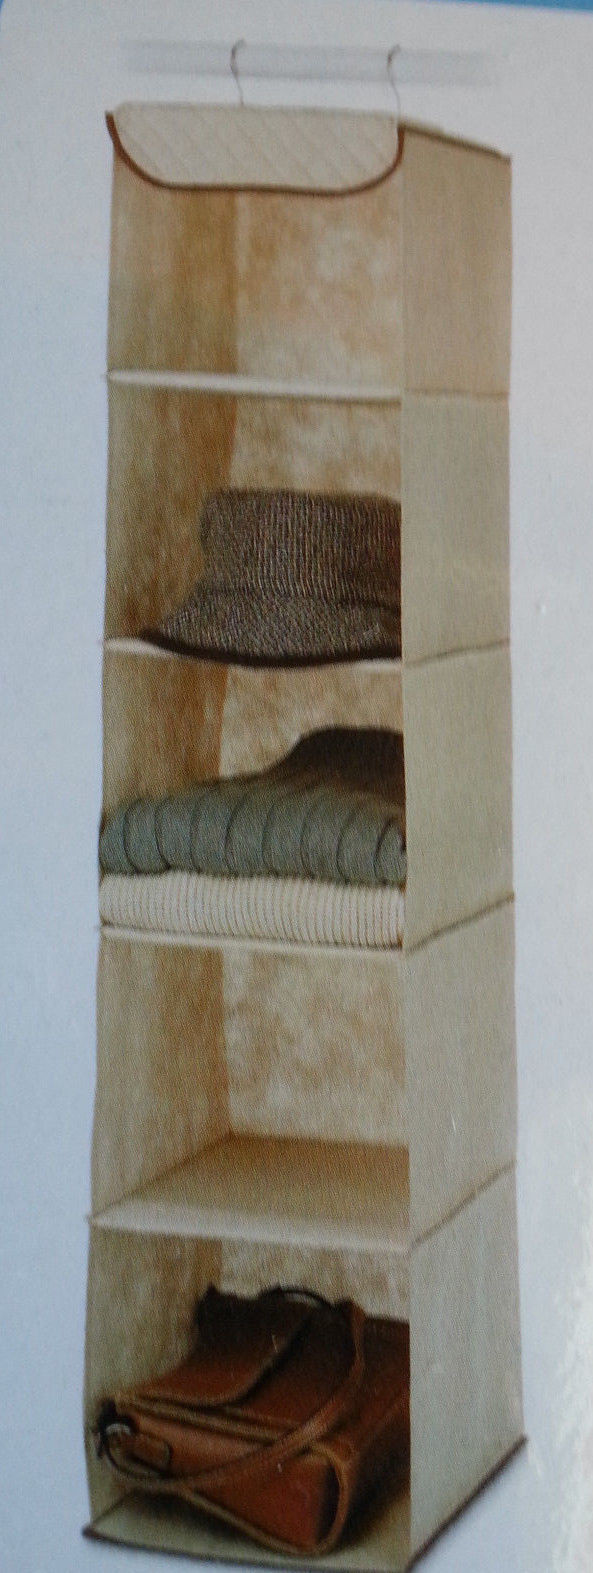 Hanging Clothes Closet Storage Organizer 5 Shelves Beige Quilted Durable Canvas